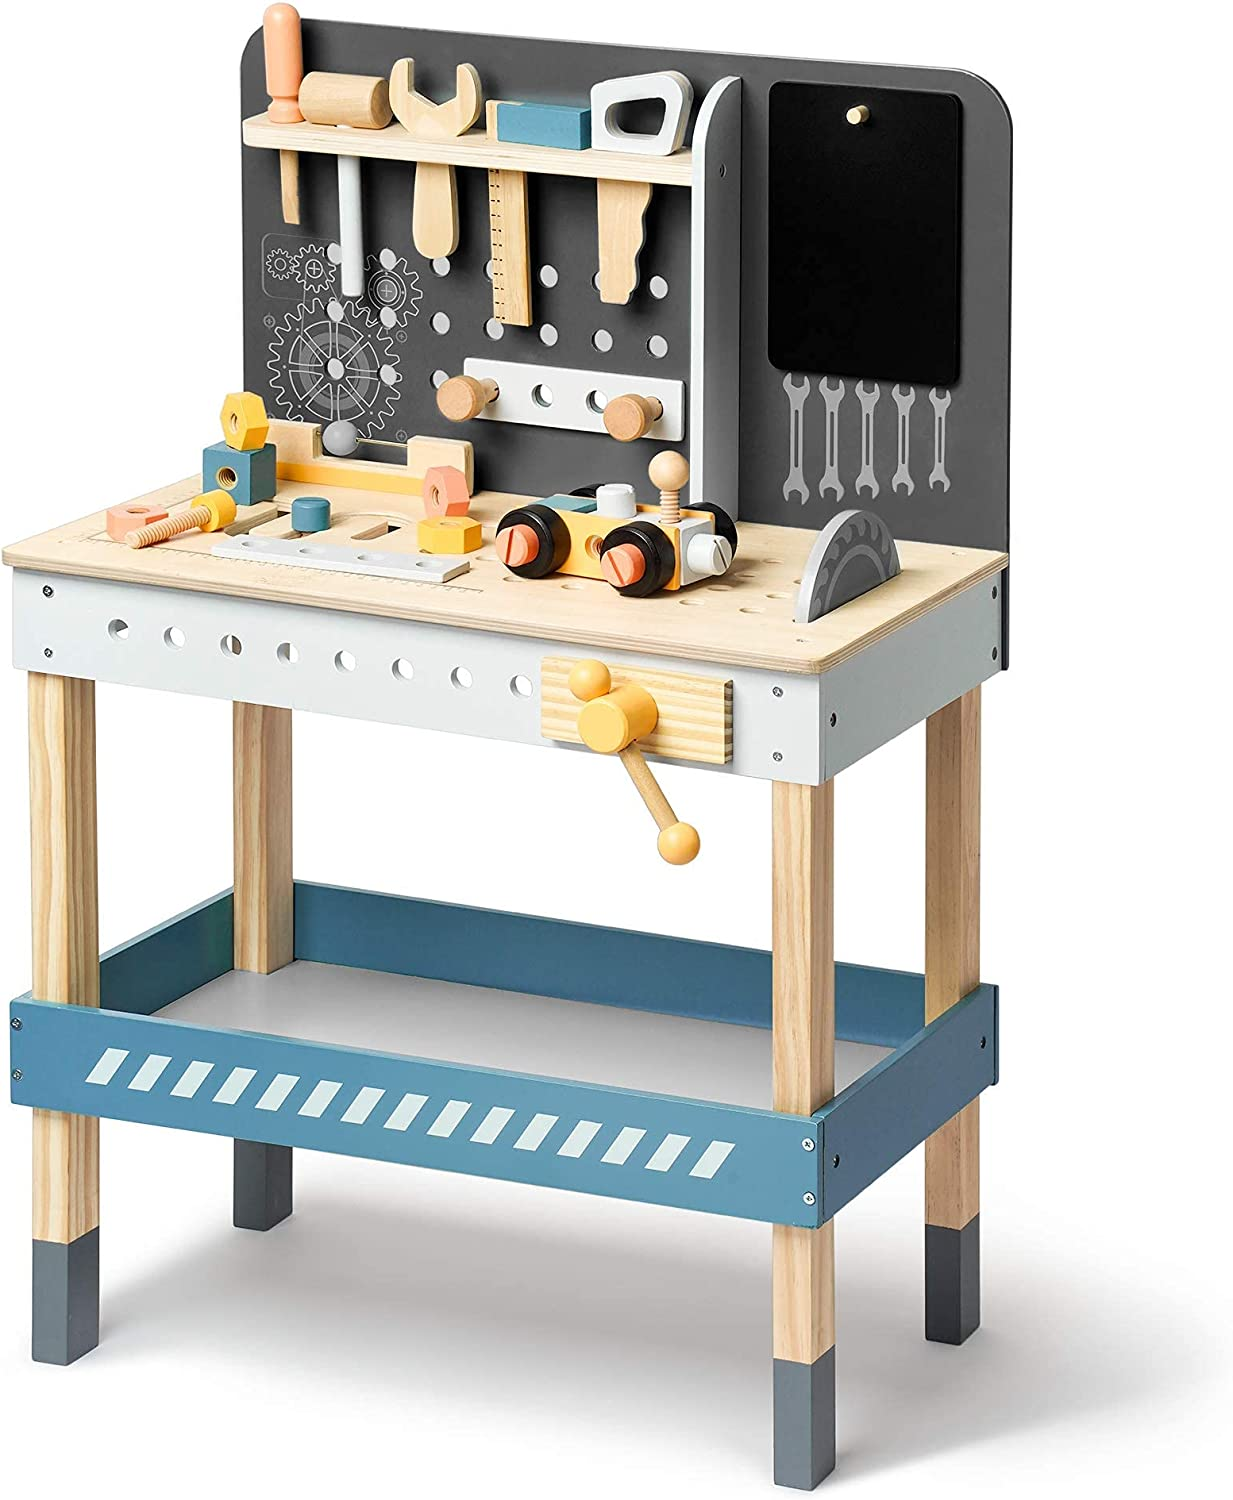 ROBUD Tool Bench Set for Max 73% OFF Workbench Toddlers Workshop Toy Wooden Max 62% OFF